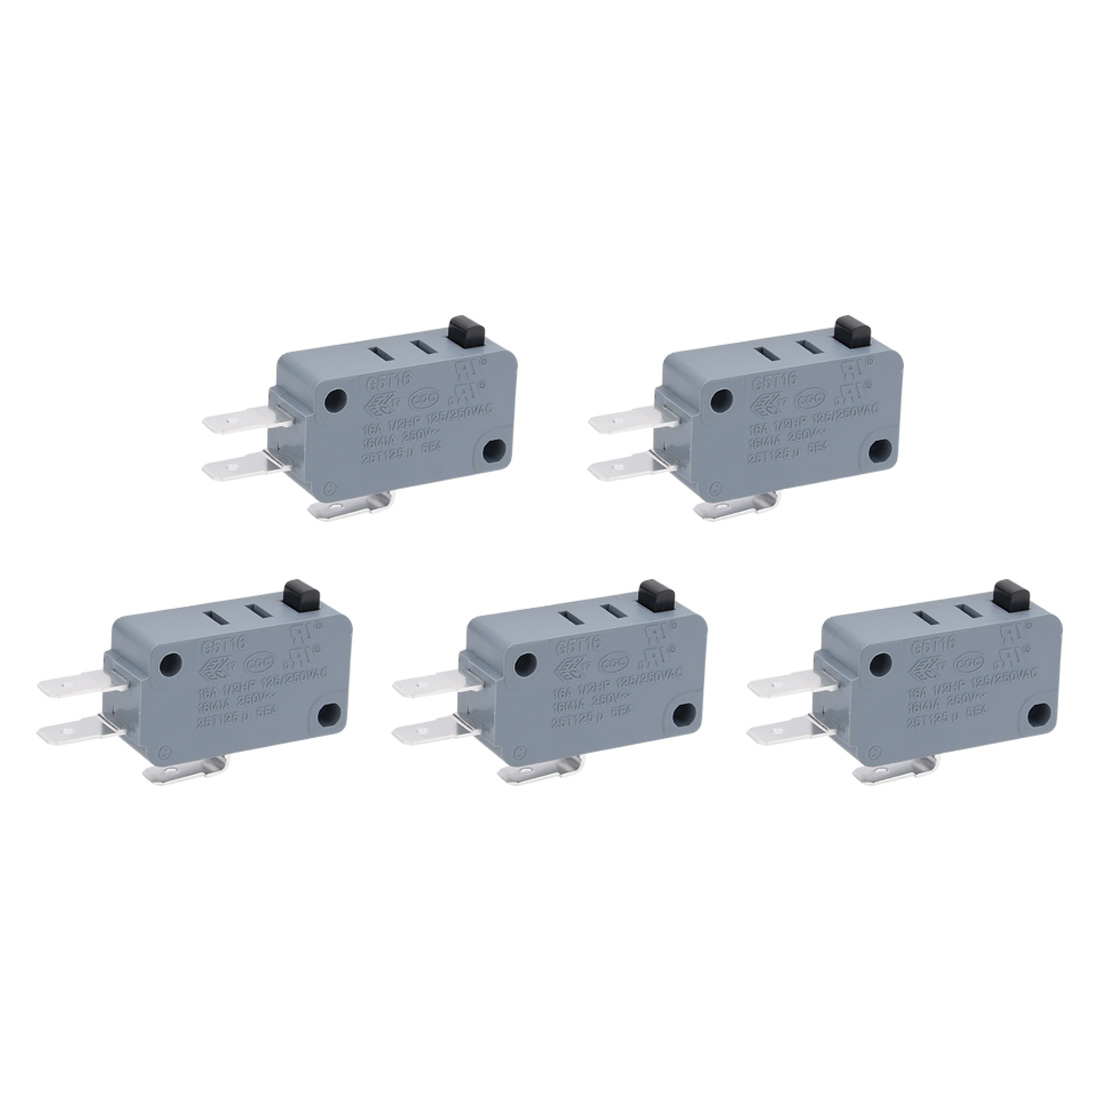 5pcs G5T16-E1Z200 AC125/250V Button Actuator SPDT Micro Miniature Switch